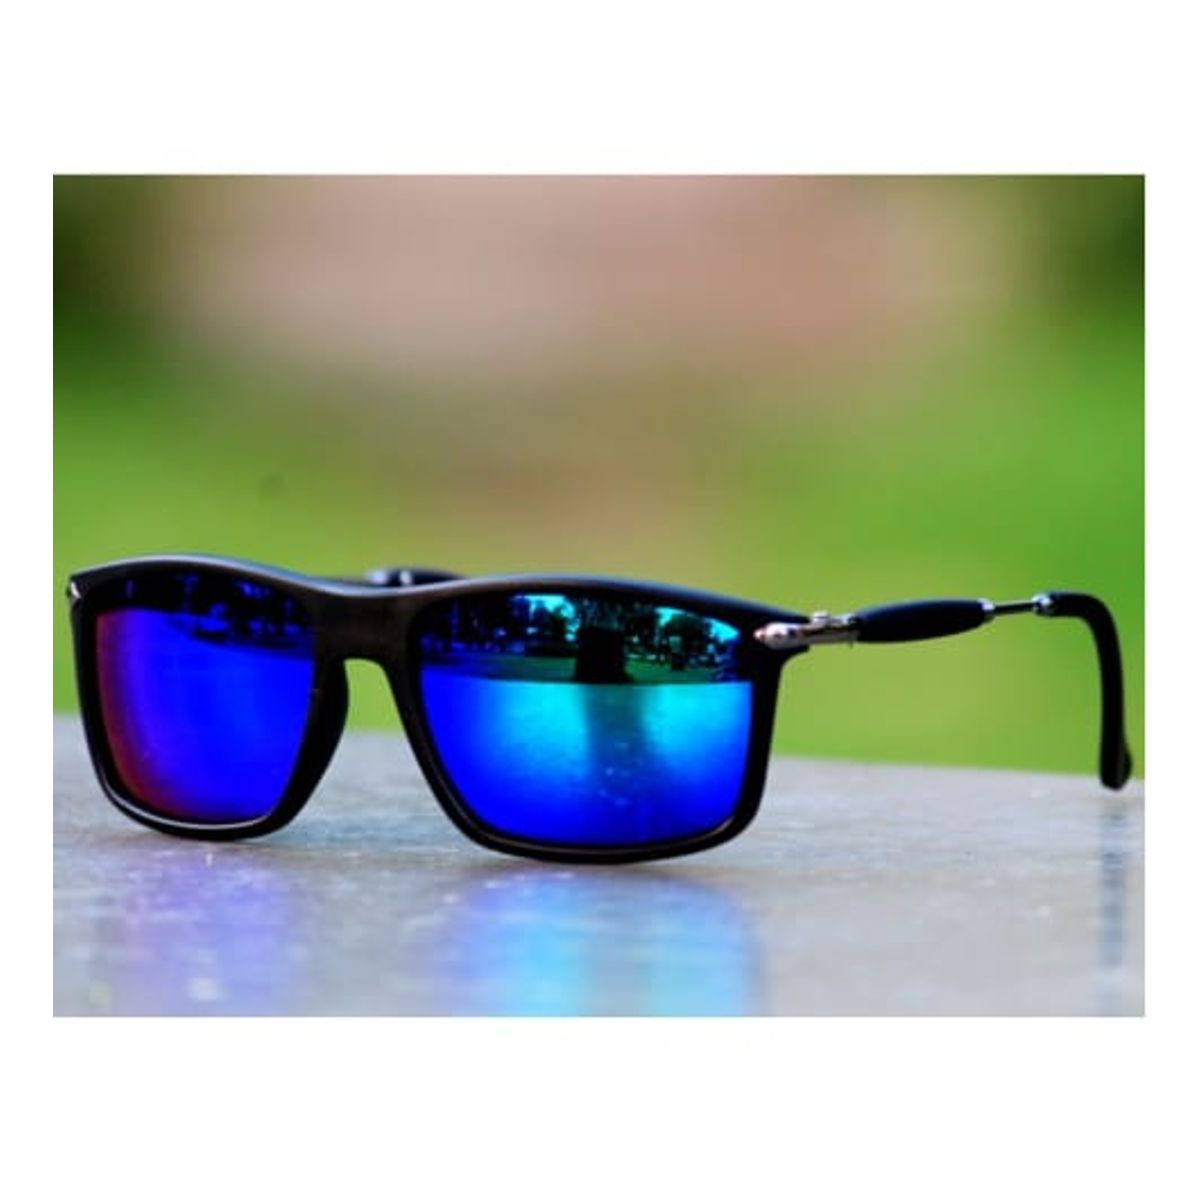 Sunglasses Mercury Blue type Square frame Goggles for Men